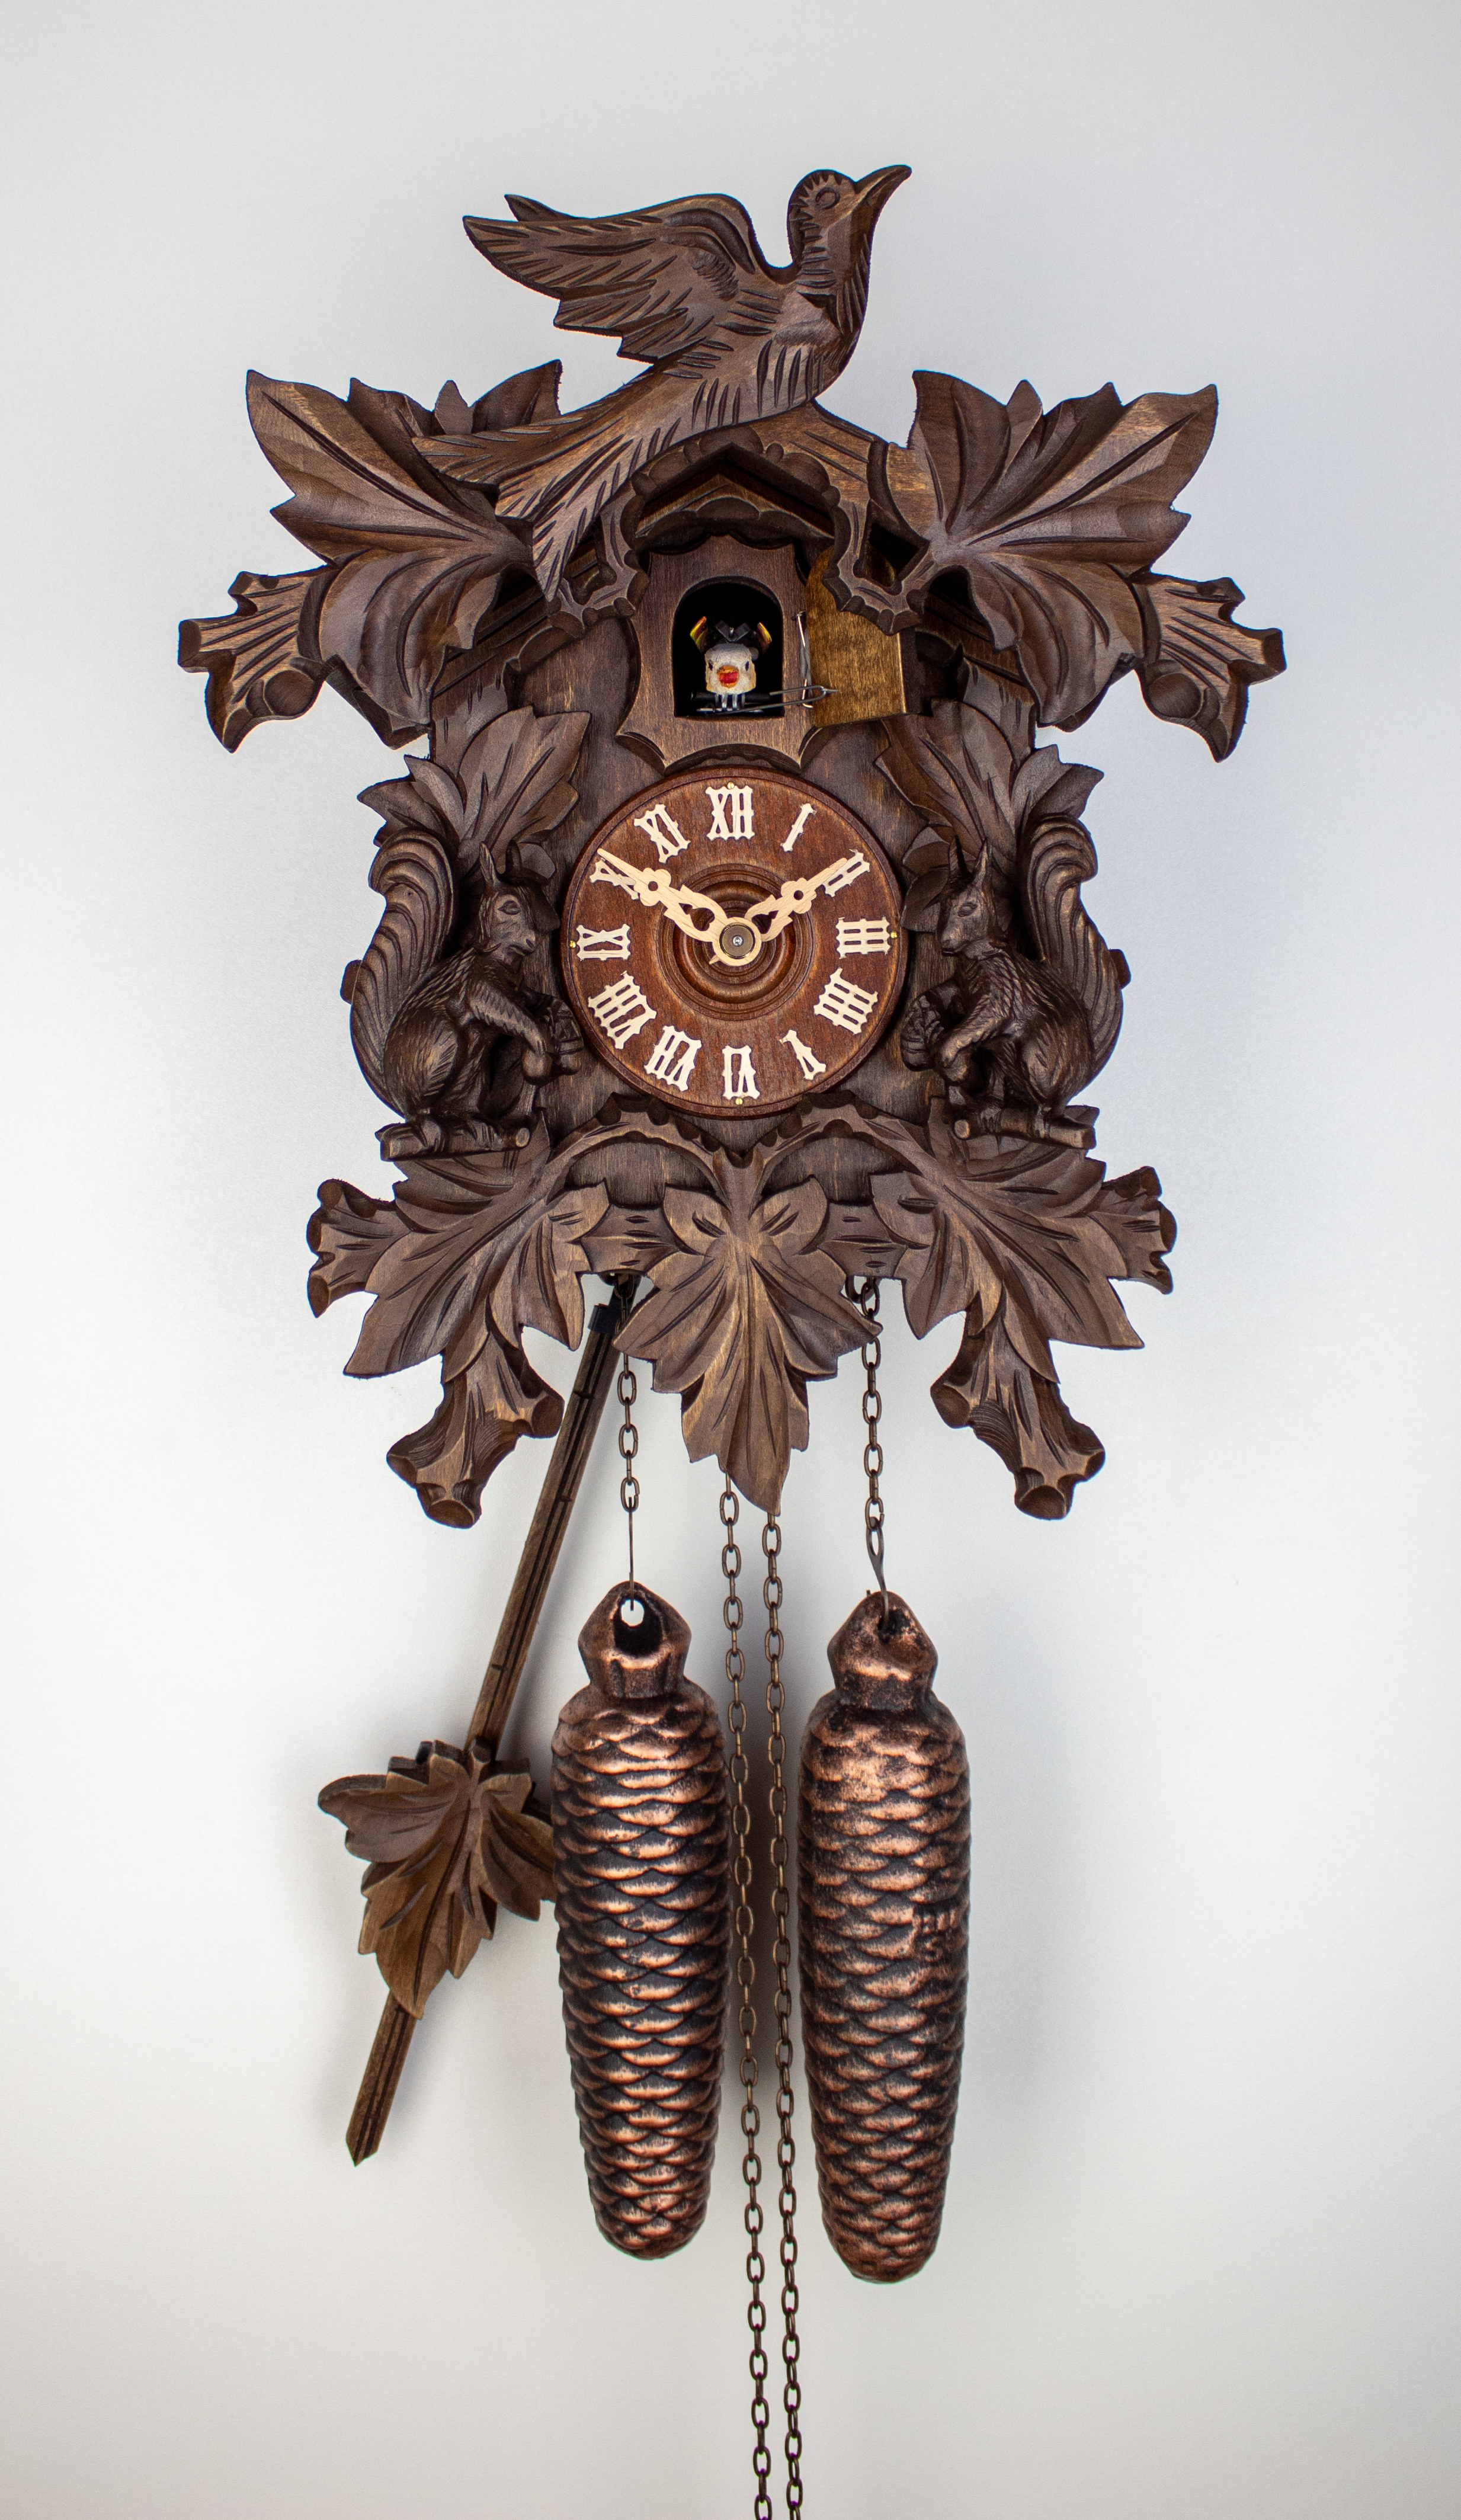 8 Days Cuckoo Clock with squirrel pair and vine leaves and bird